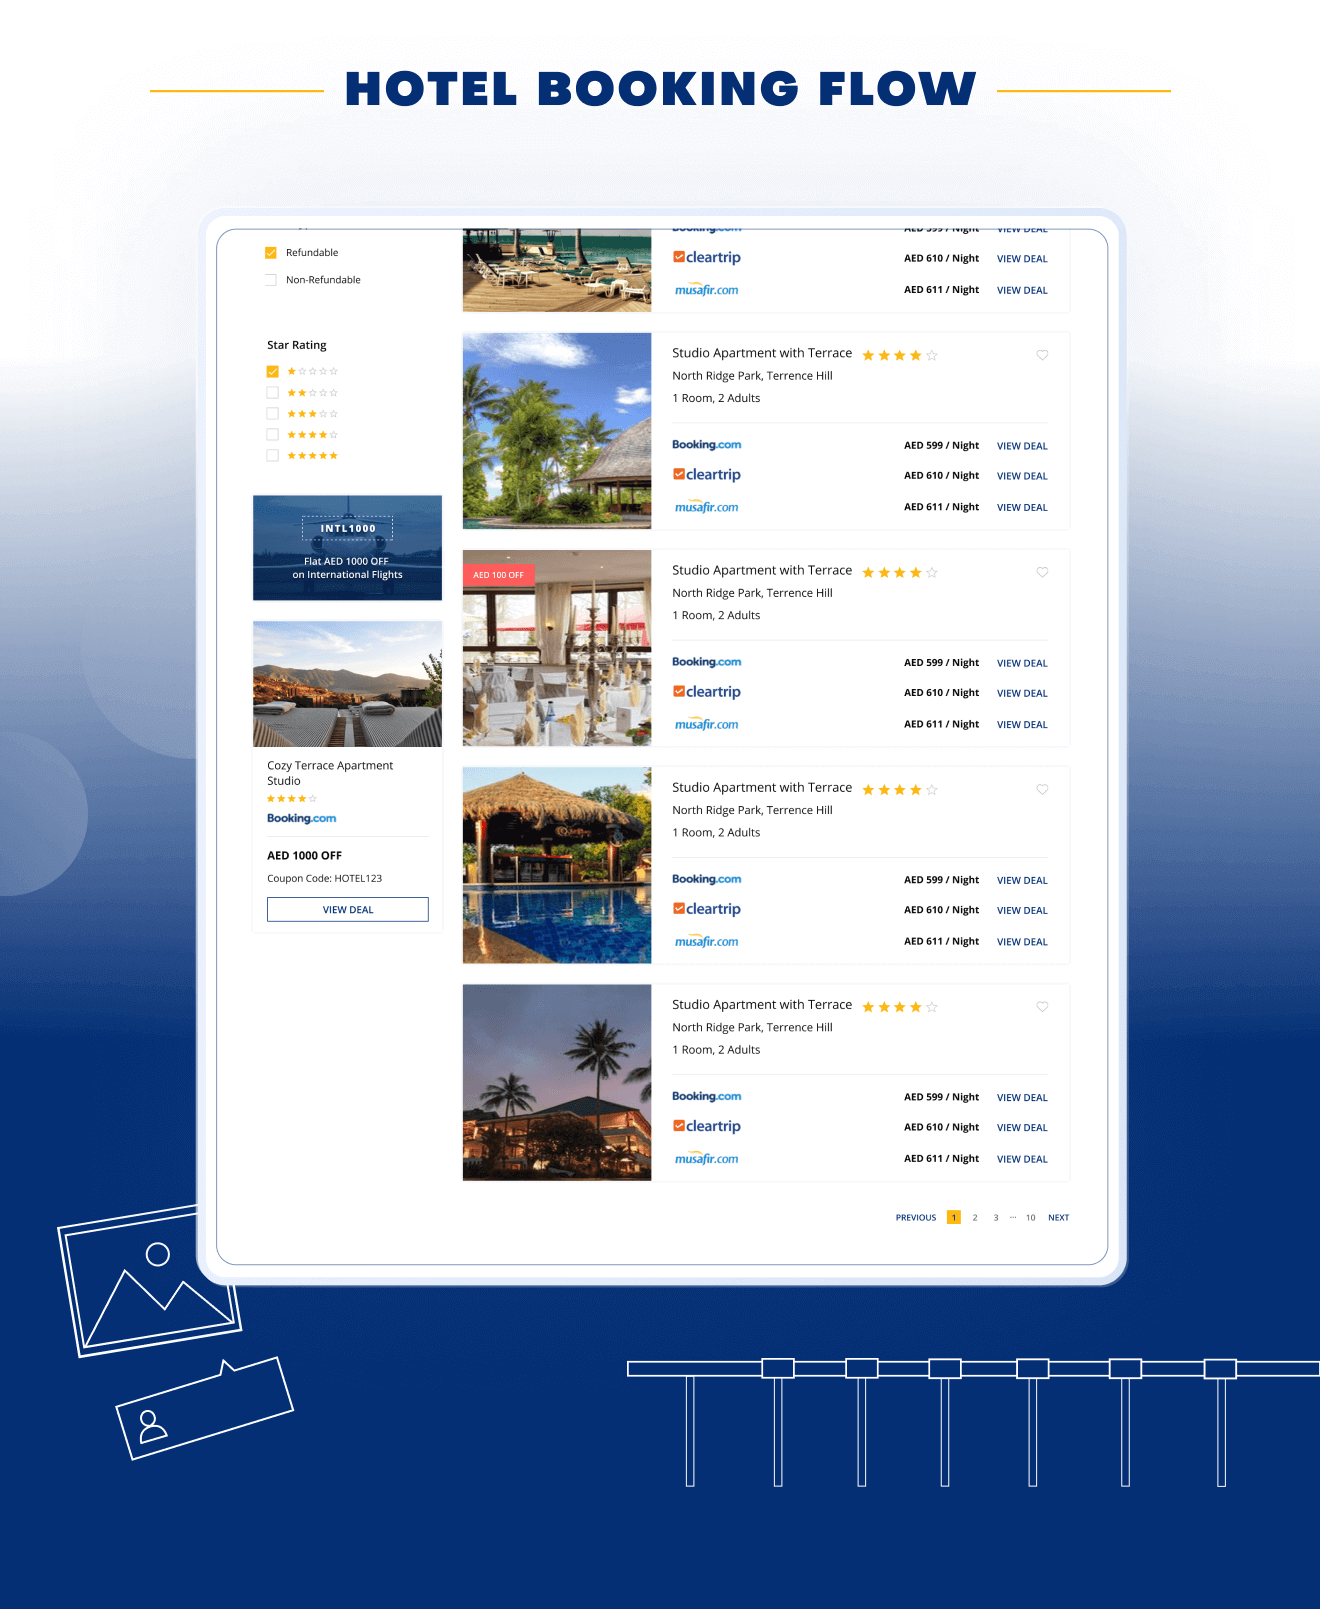 Hotel-Booking-Flow-Skyshopper